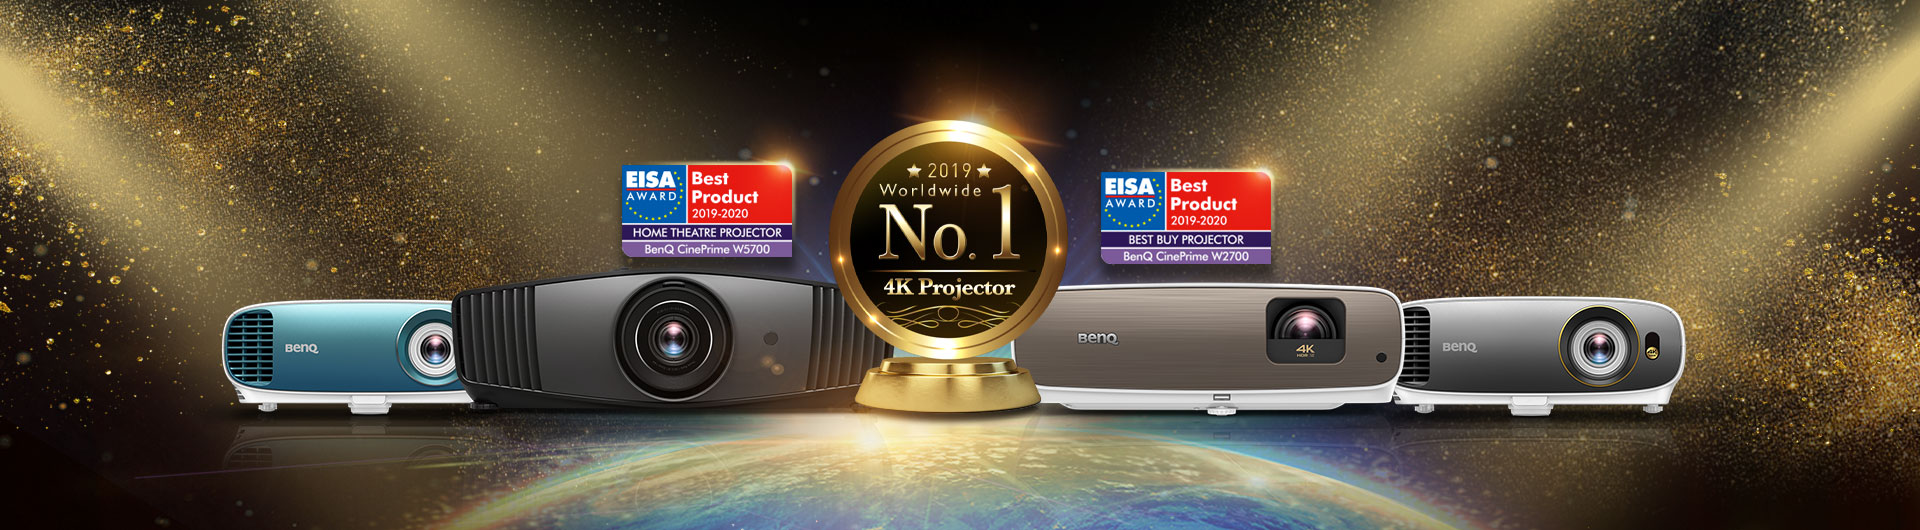 Internationally renowned EISA Awards go to BenQ's W2700 and